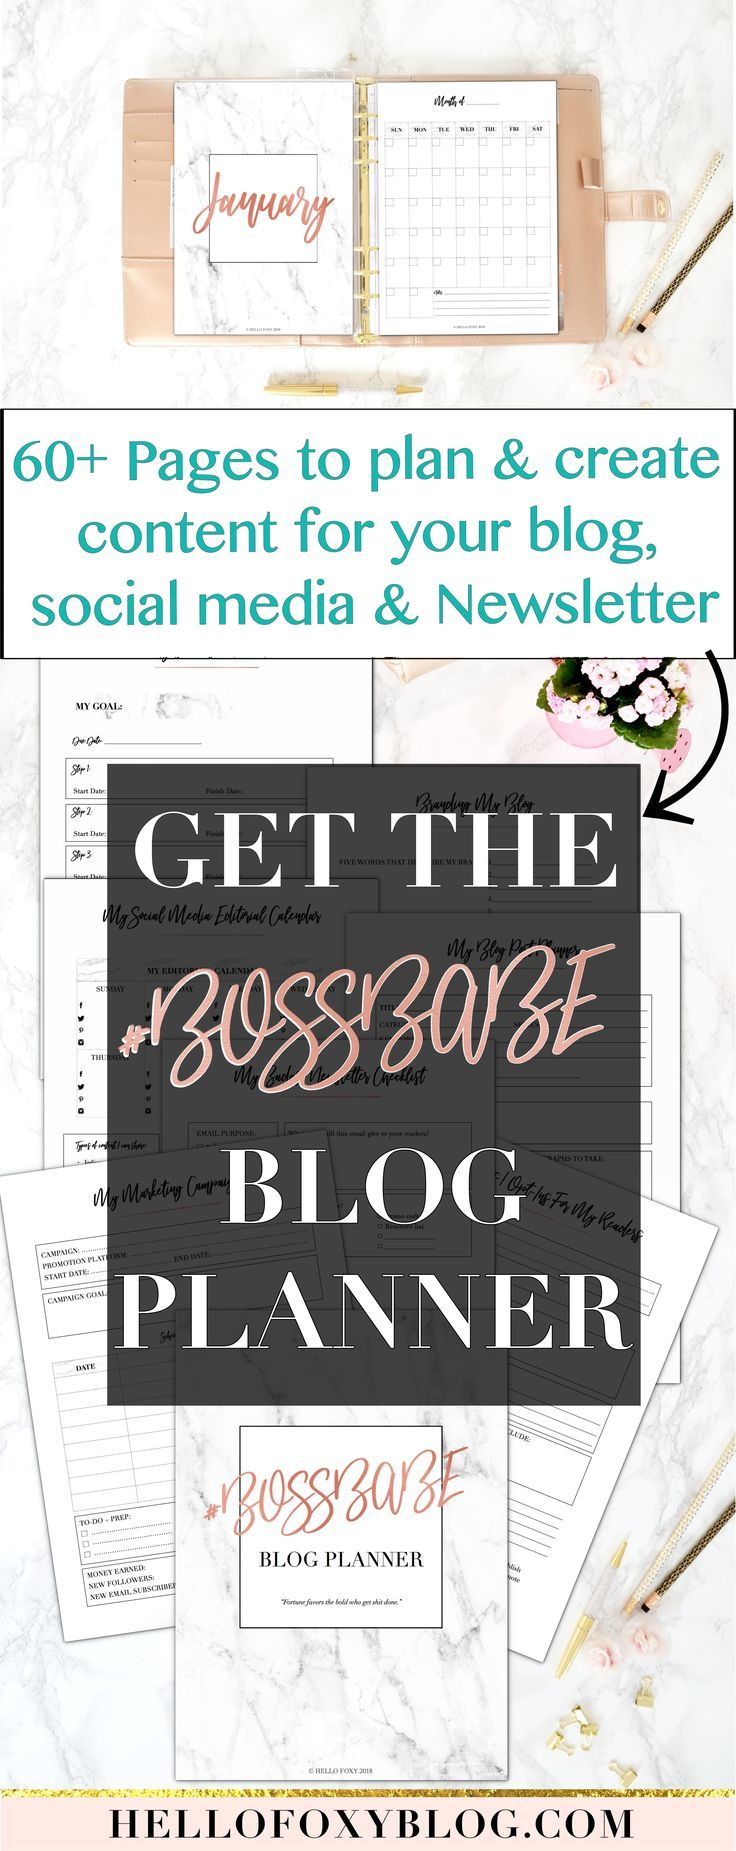 The #BOSSBABE Blog Planner has been created specifically to help you:  - Brand your blog, social media, newsletter - Set your goals and create an action plan to accomplish them - Create kick-ass content - Design your newsletter, freebies, and marketing campaigns - Keep track of your progress, stats and income - Stay motivated throughout the year - Keep all of your notes and infos in one place.